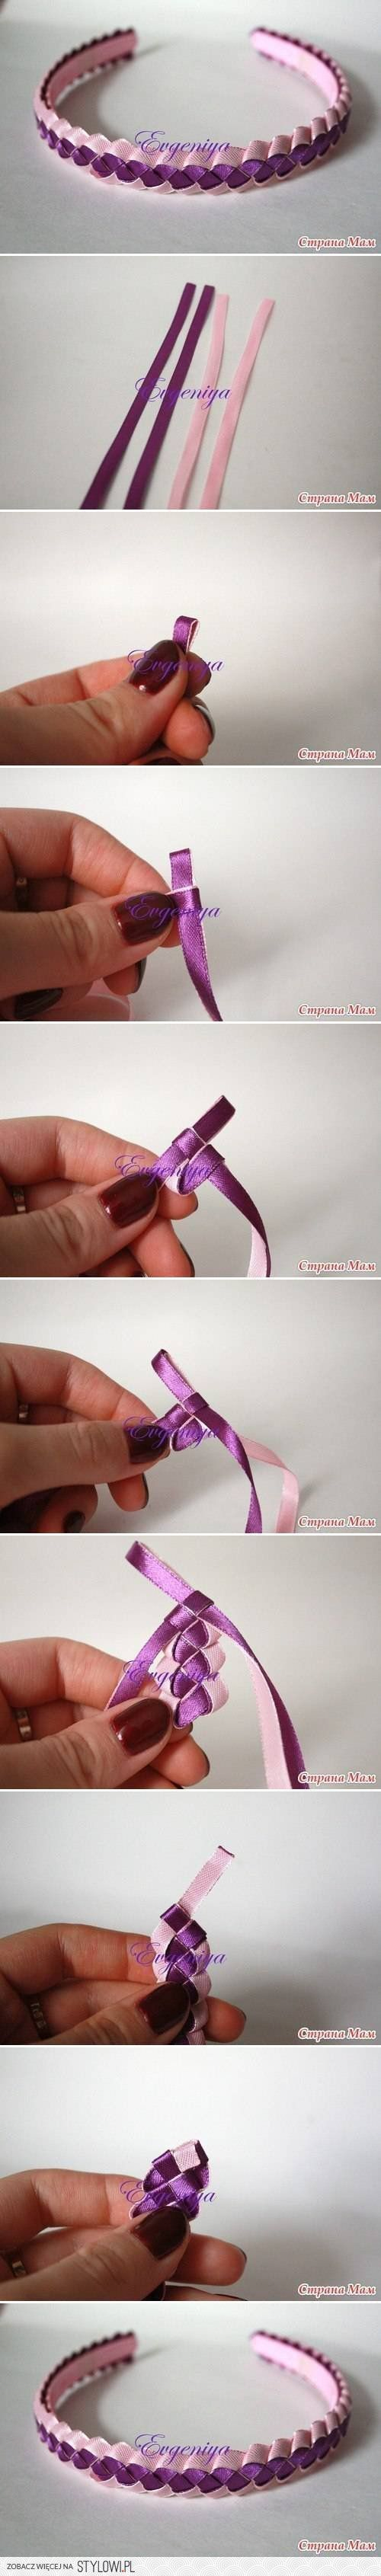 DIY 4 Strips Weaving DIY Projects | UsefulDIY.com na Stylowi.pl